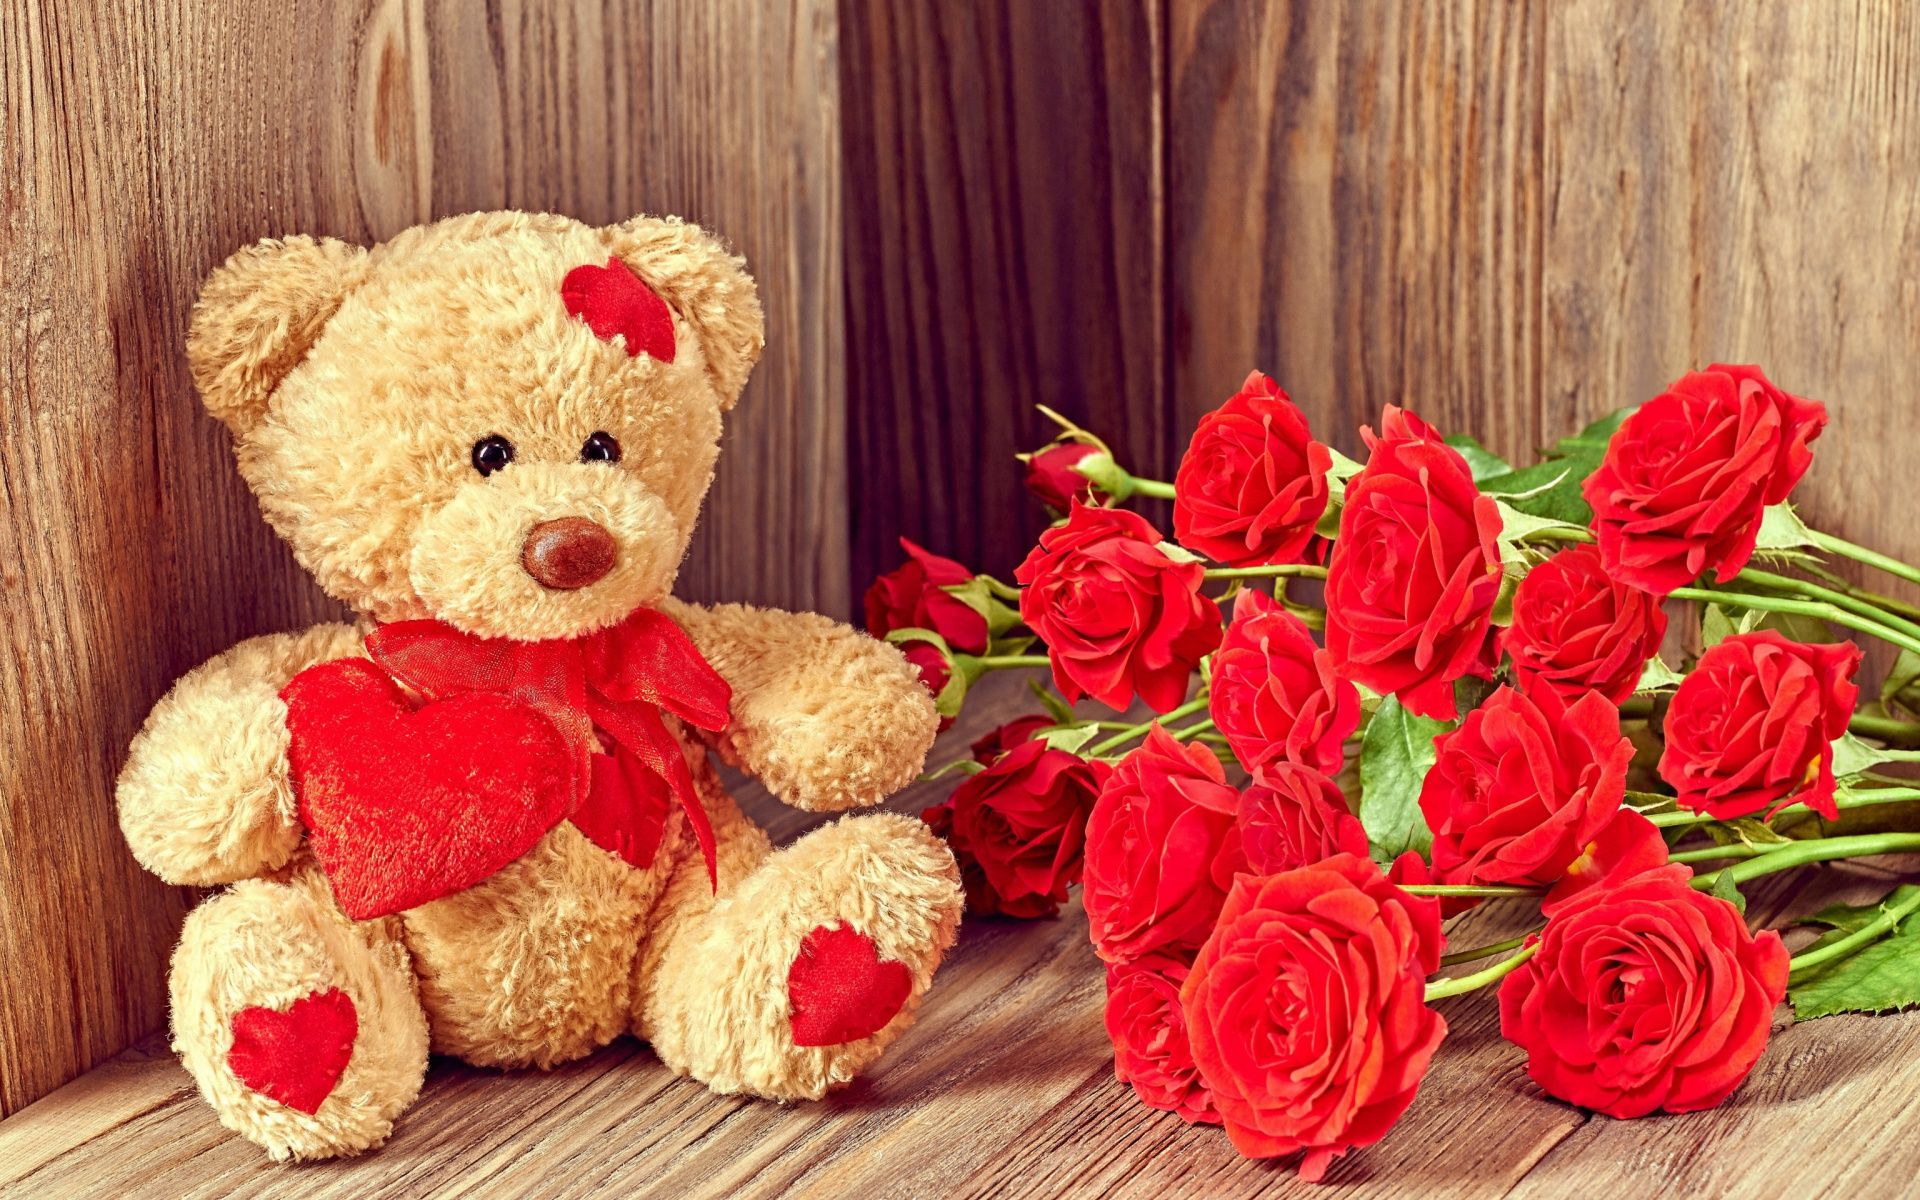 Brodwn Teddy Bear Gift For Saint Valentines Day